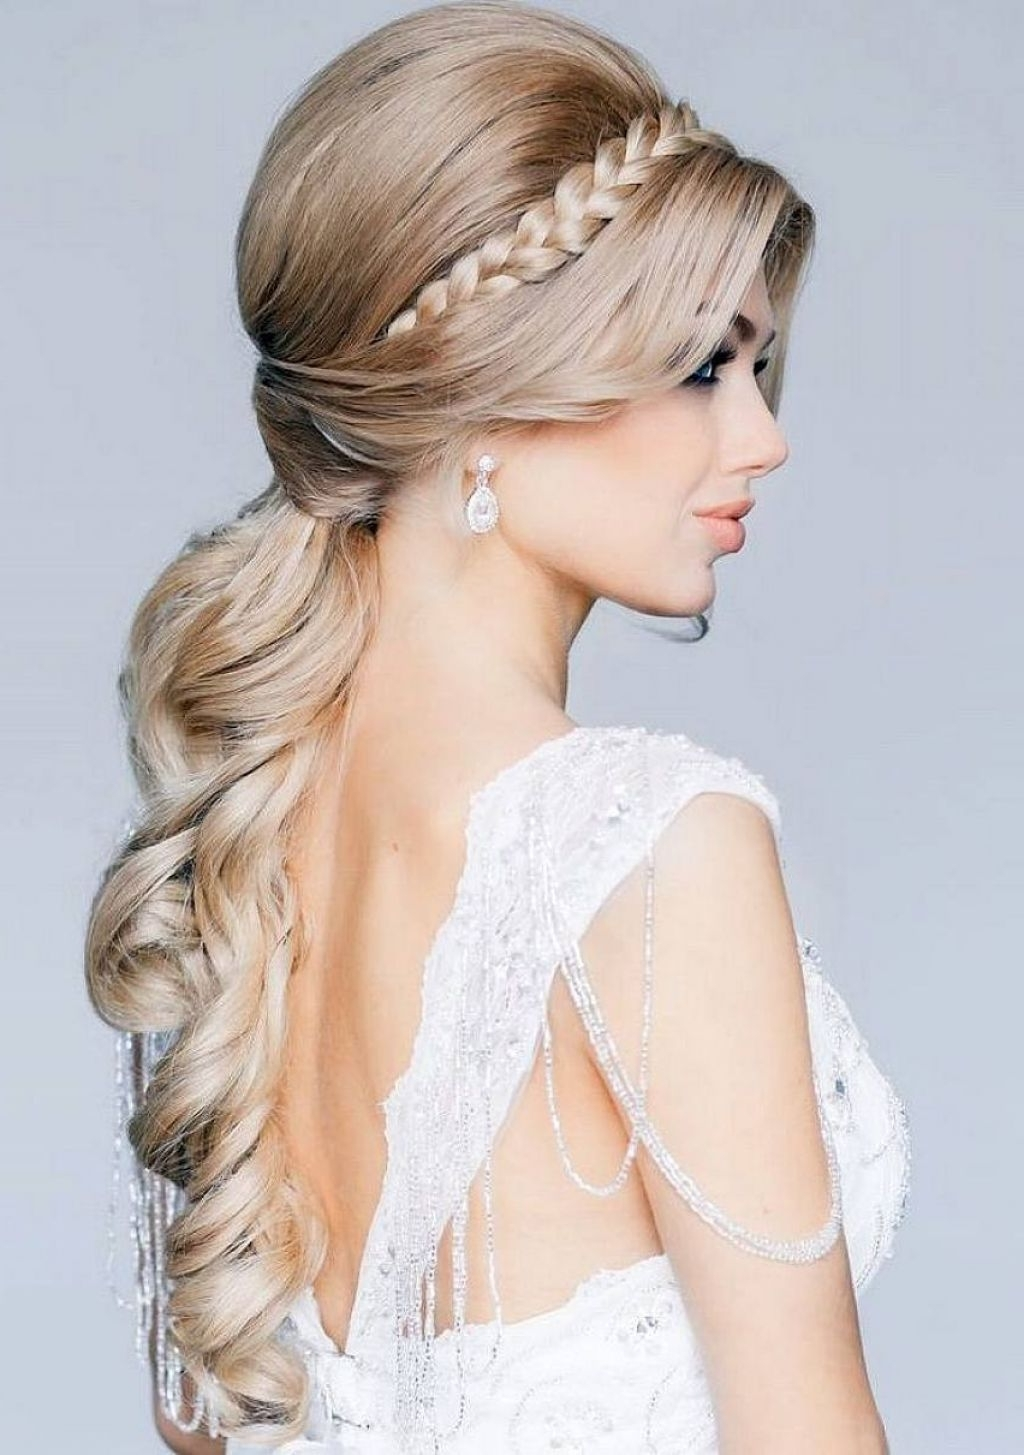 √ 24+ Fresh Wedding Hairstyles For Long Hair: Braids Wedding In Well Known Wedding Updos For Long Hair With Braids (View 11 of 15)